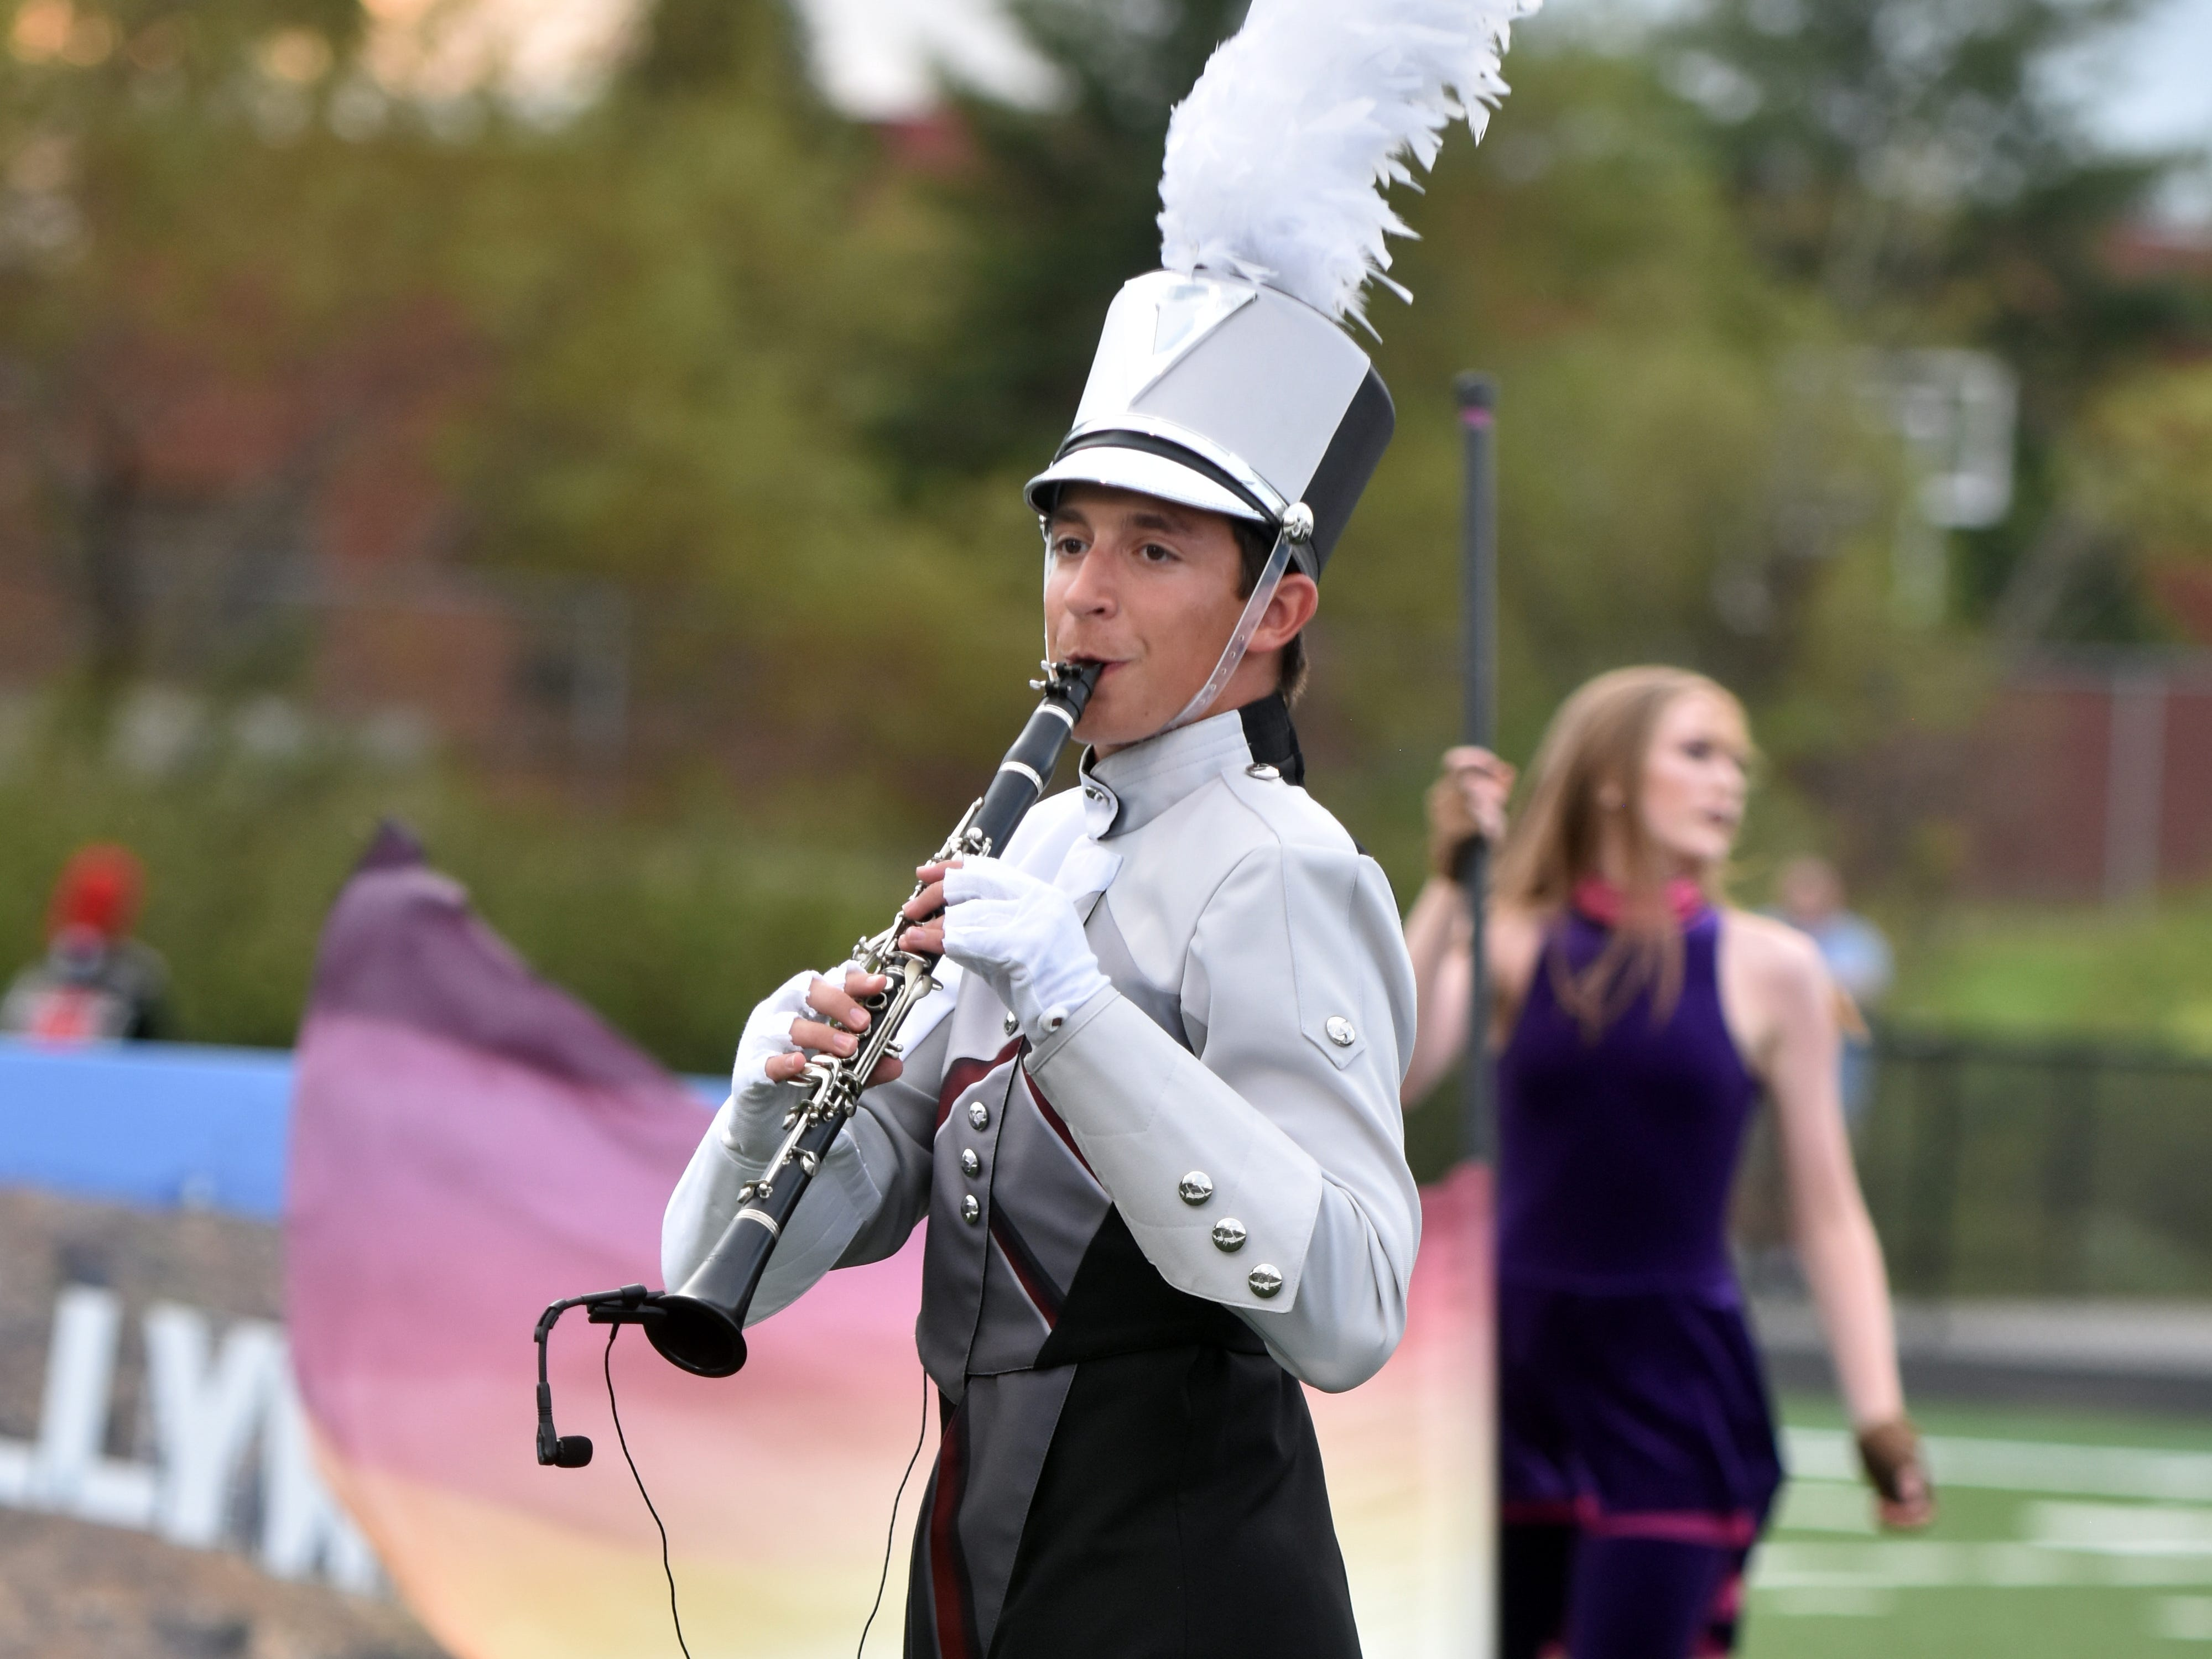 A member of the Bearden High marching band performs during the Knox County band exhibition, hosted by Hardin Valley Academy.